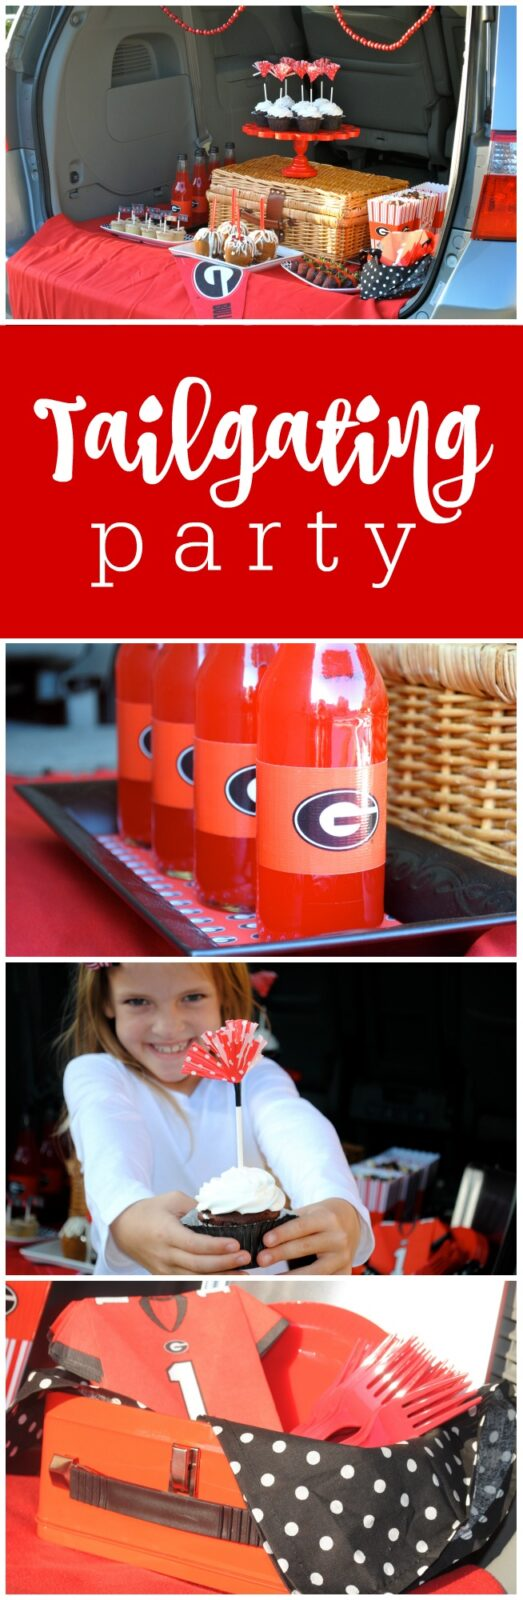 Tailgating Party - UGA Party by The Party Teacher